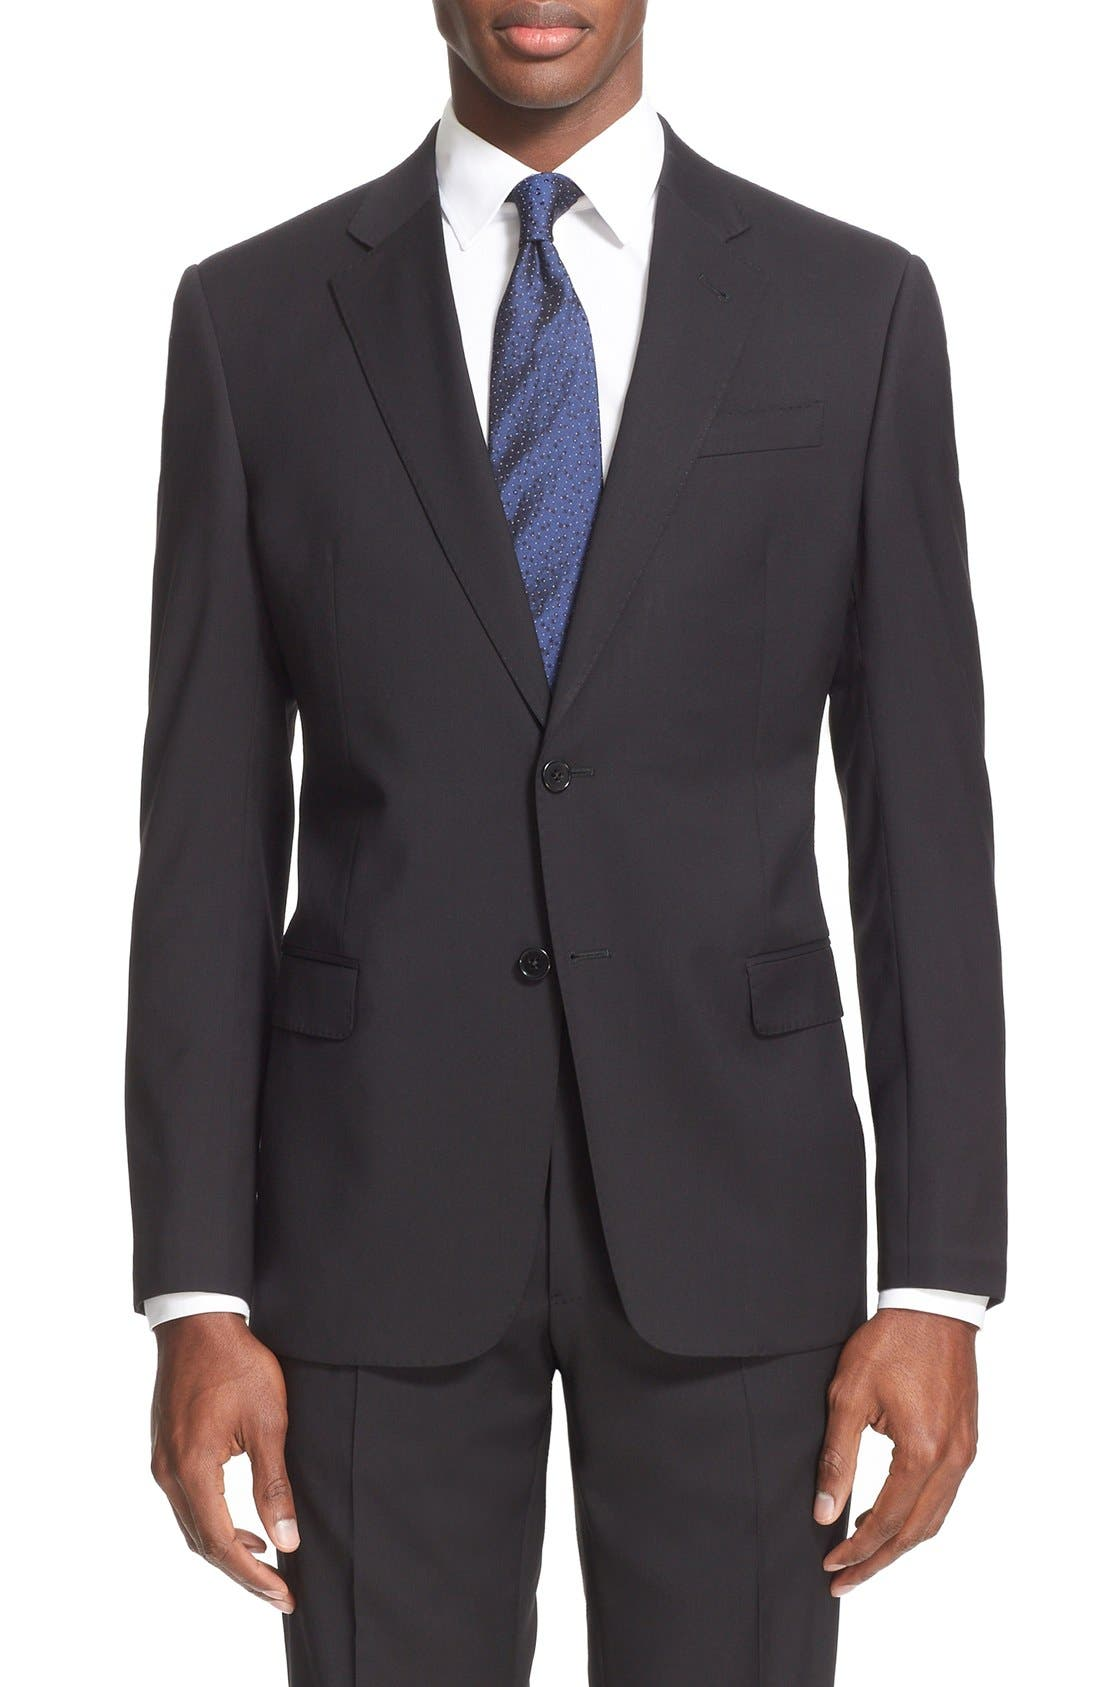 G-Line Trim Fit Solid Wool Suit,                             Alternate thumbnail 4, color,                             001